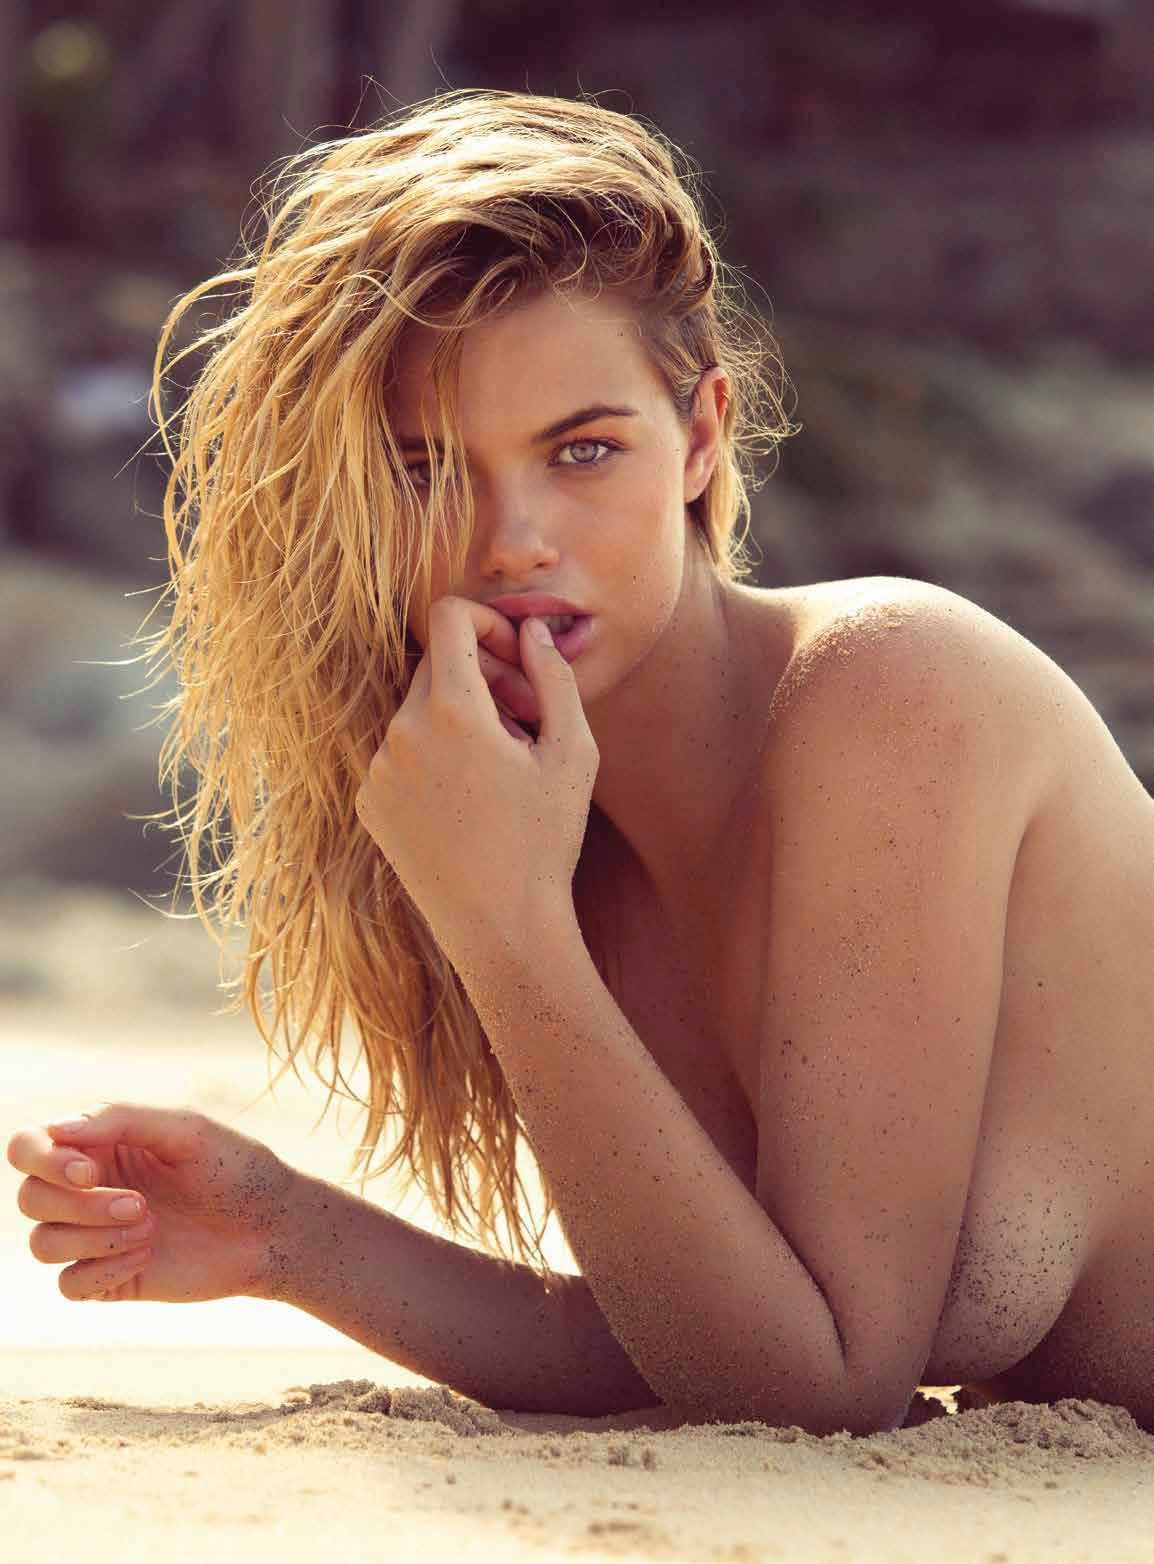 Video Hailey Clauson nudes (33 photo), Sexy, Cleavage, Feet, braless 2019